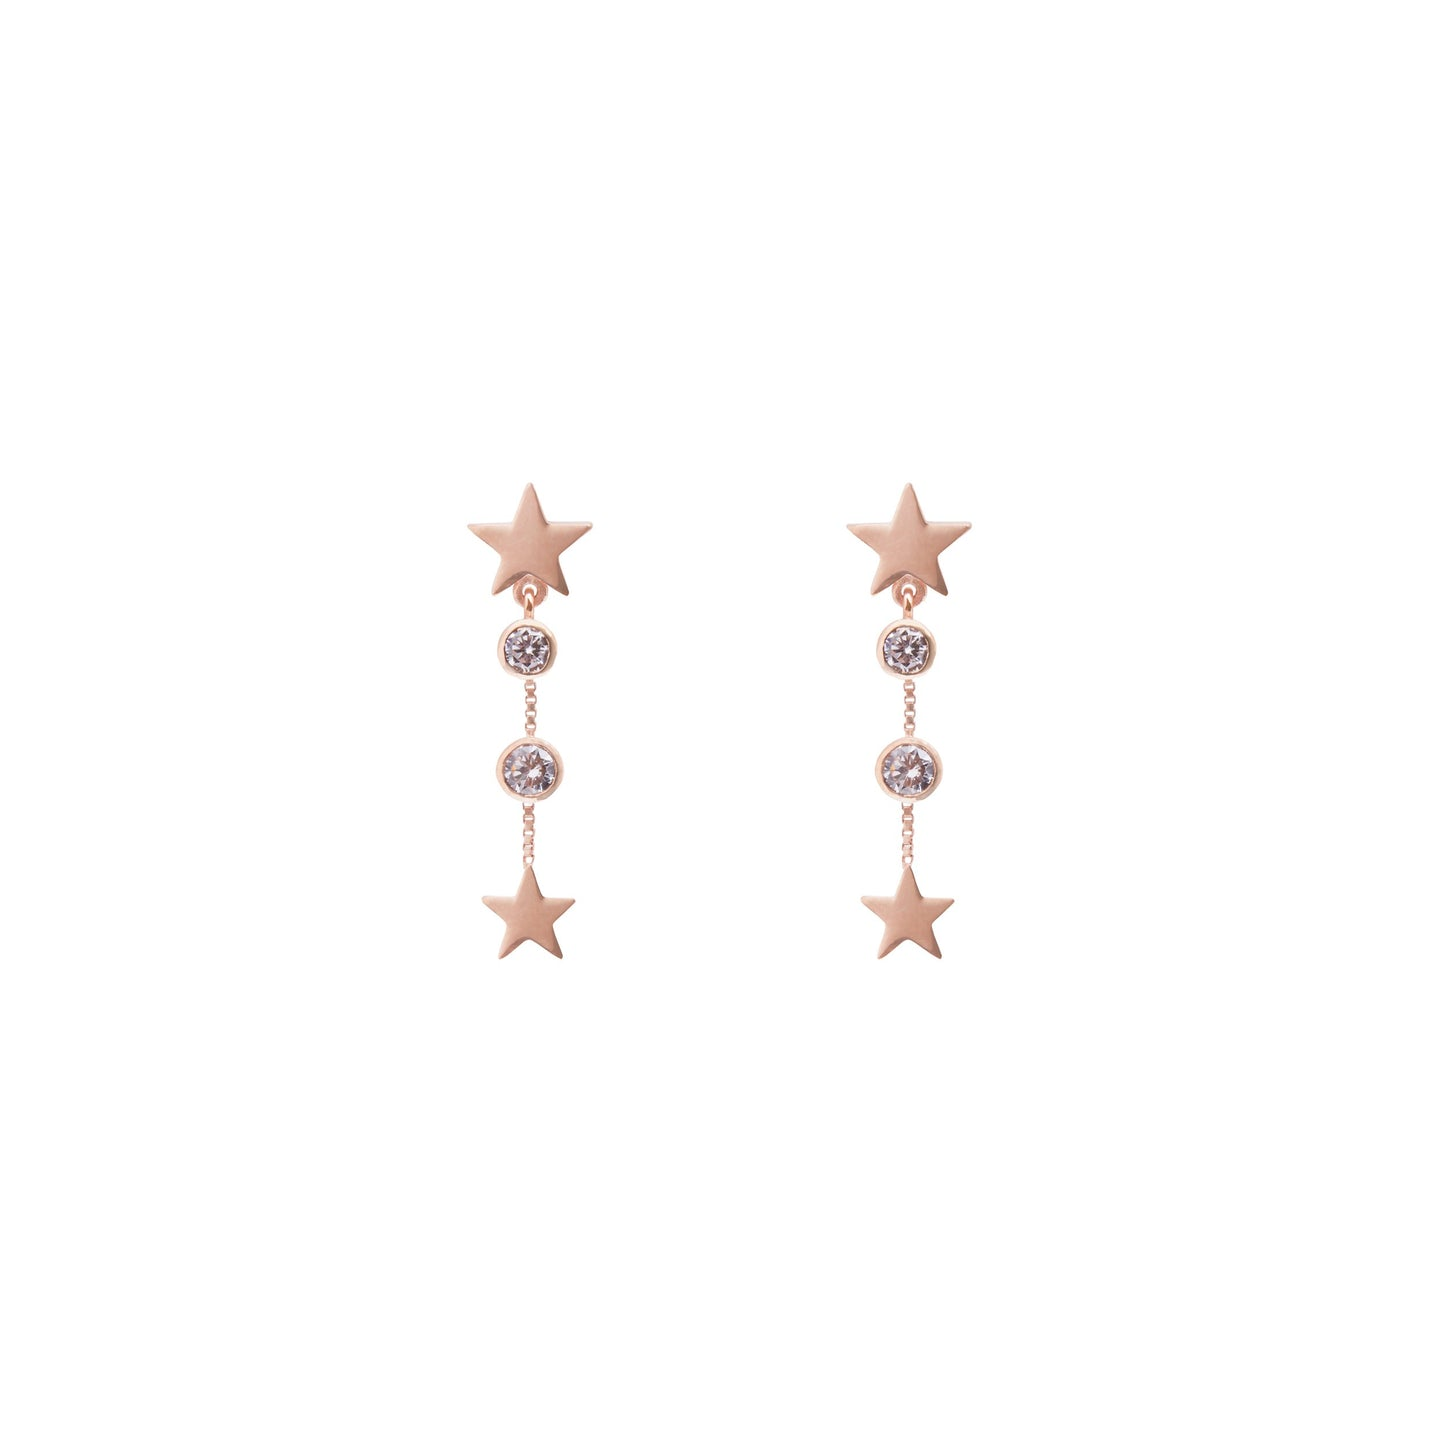 Lucky Star Earring in Rose Gold with Zirconia